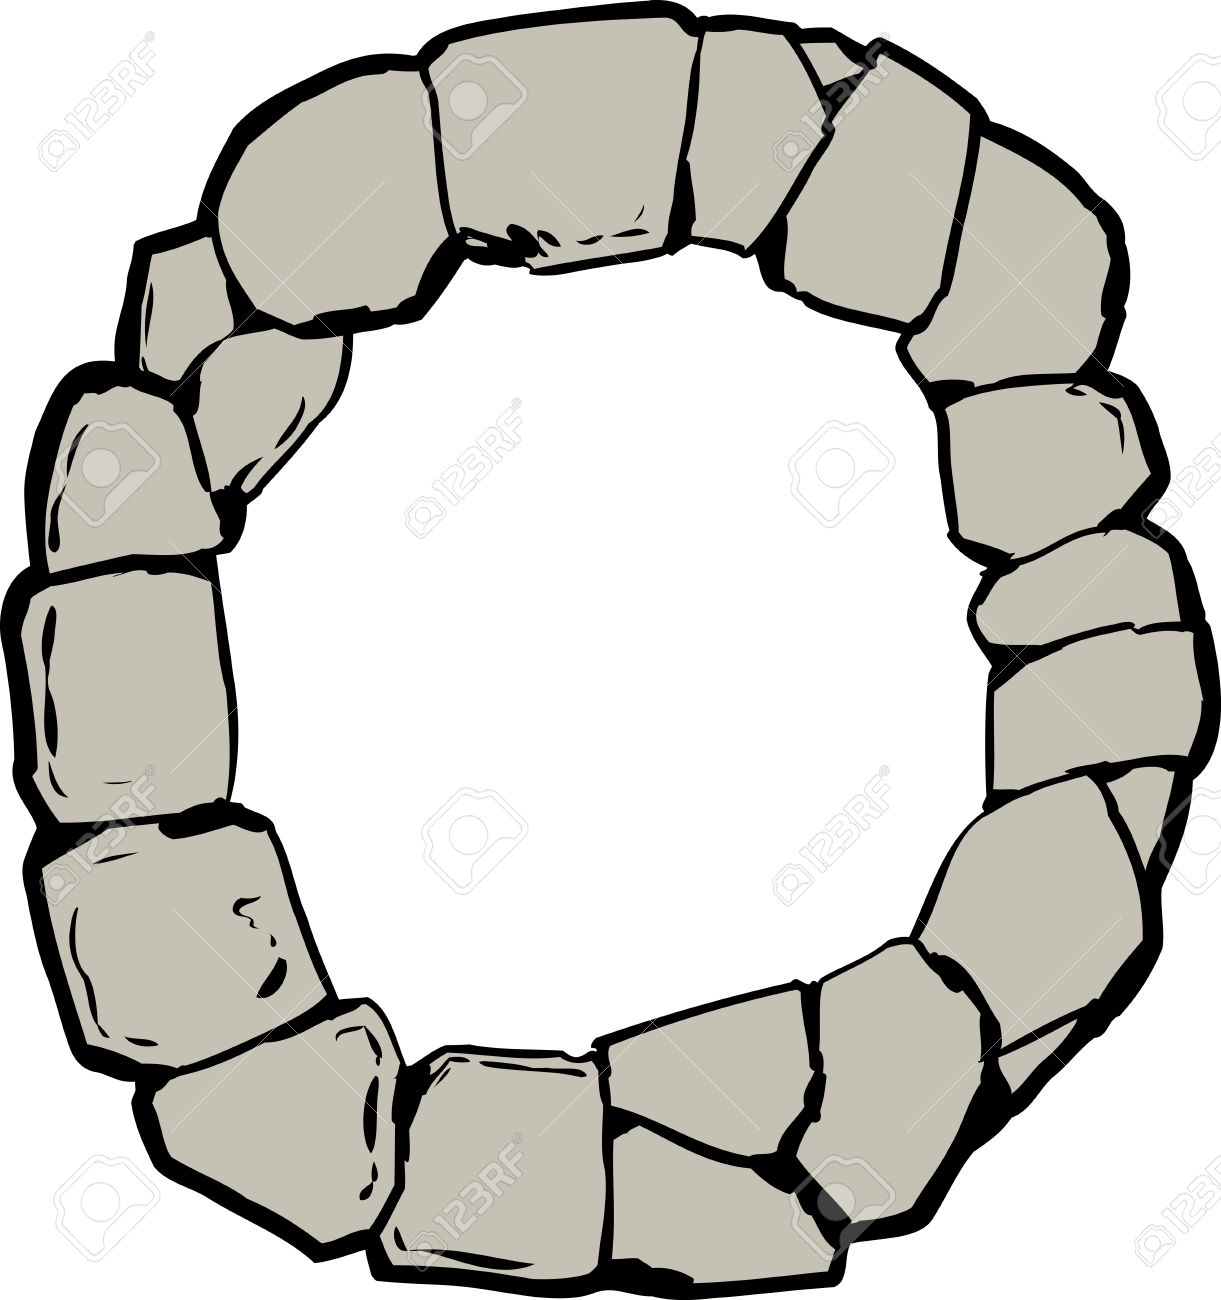 Top Down View On Old Stone Ring For Well Or Letter O Royalty Free.